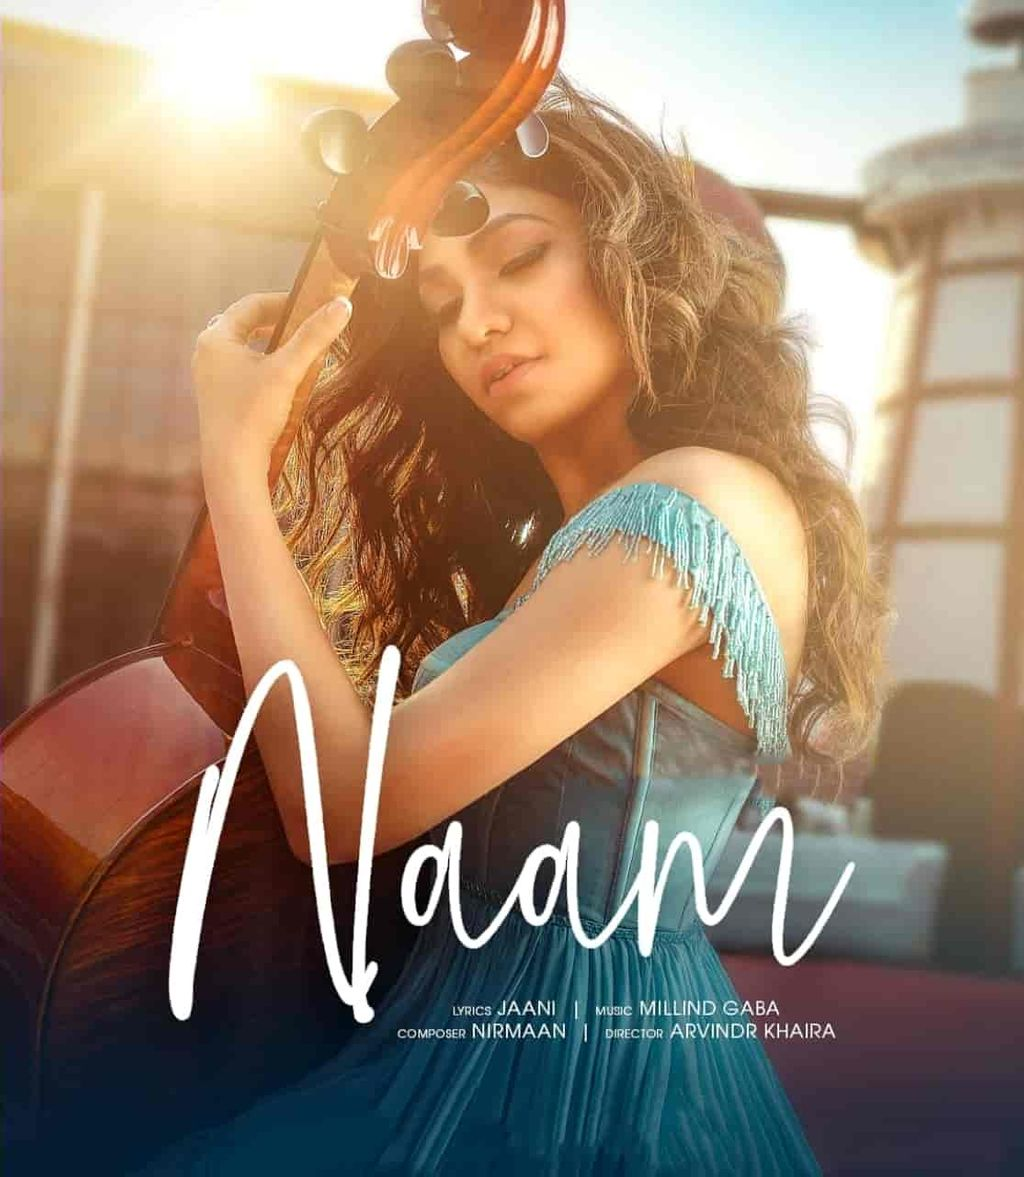 naam-romantic-hindi-song-image-by-tulsi-kumar-kd4b0fcs